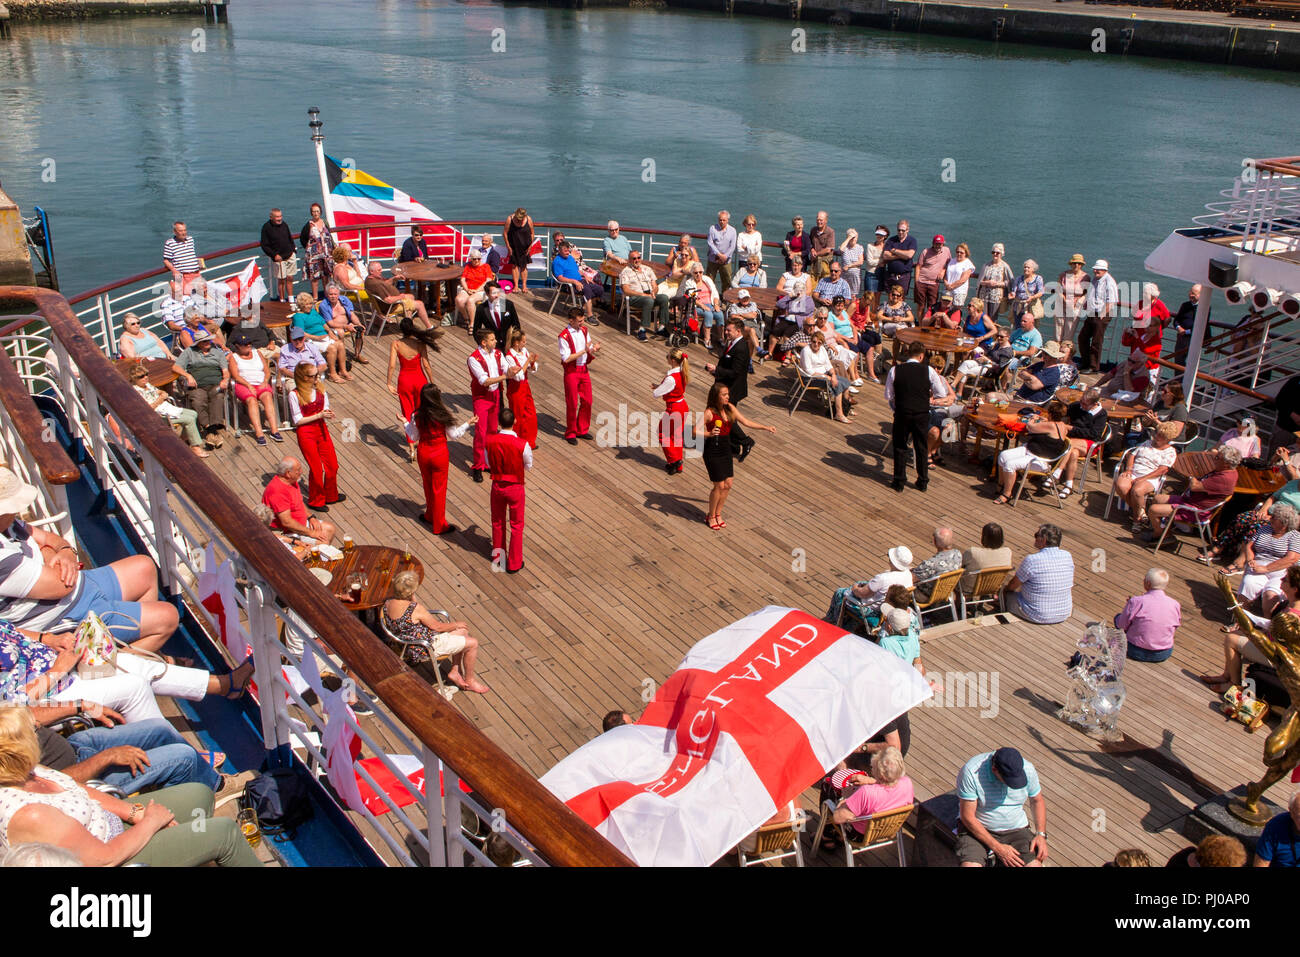 Portugal, Porto, Matosinhos, Leixoes, MV Marco Polo passengers being entertained on deck in sunshine - Stock Image